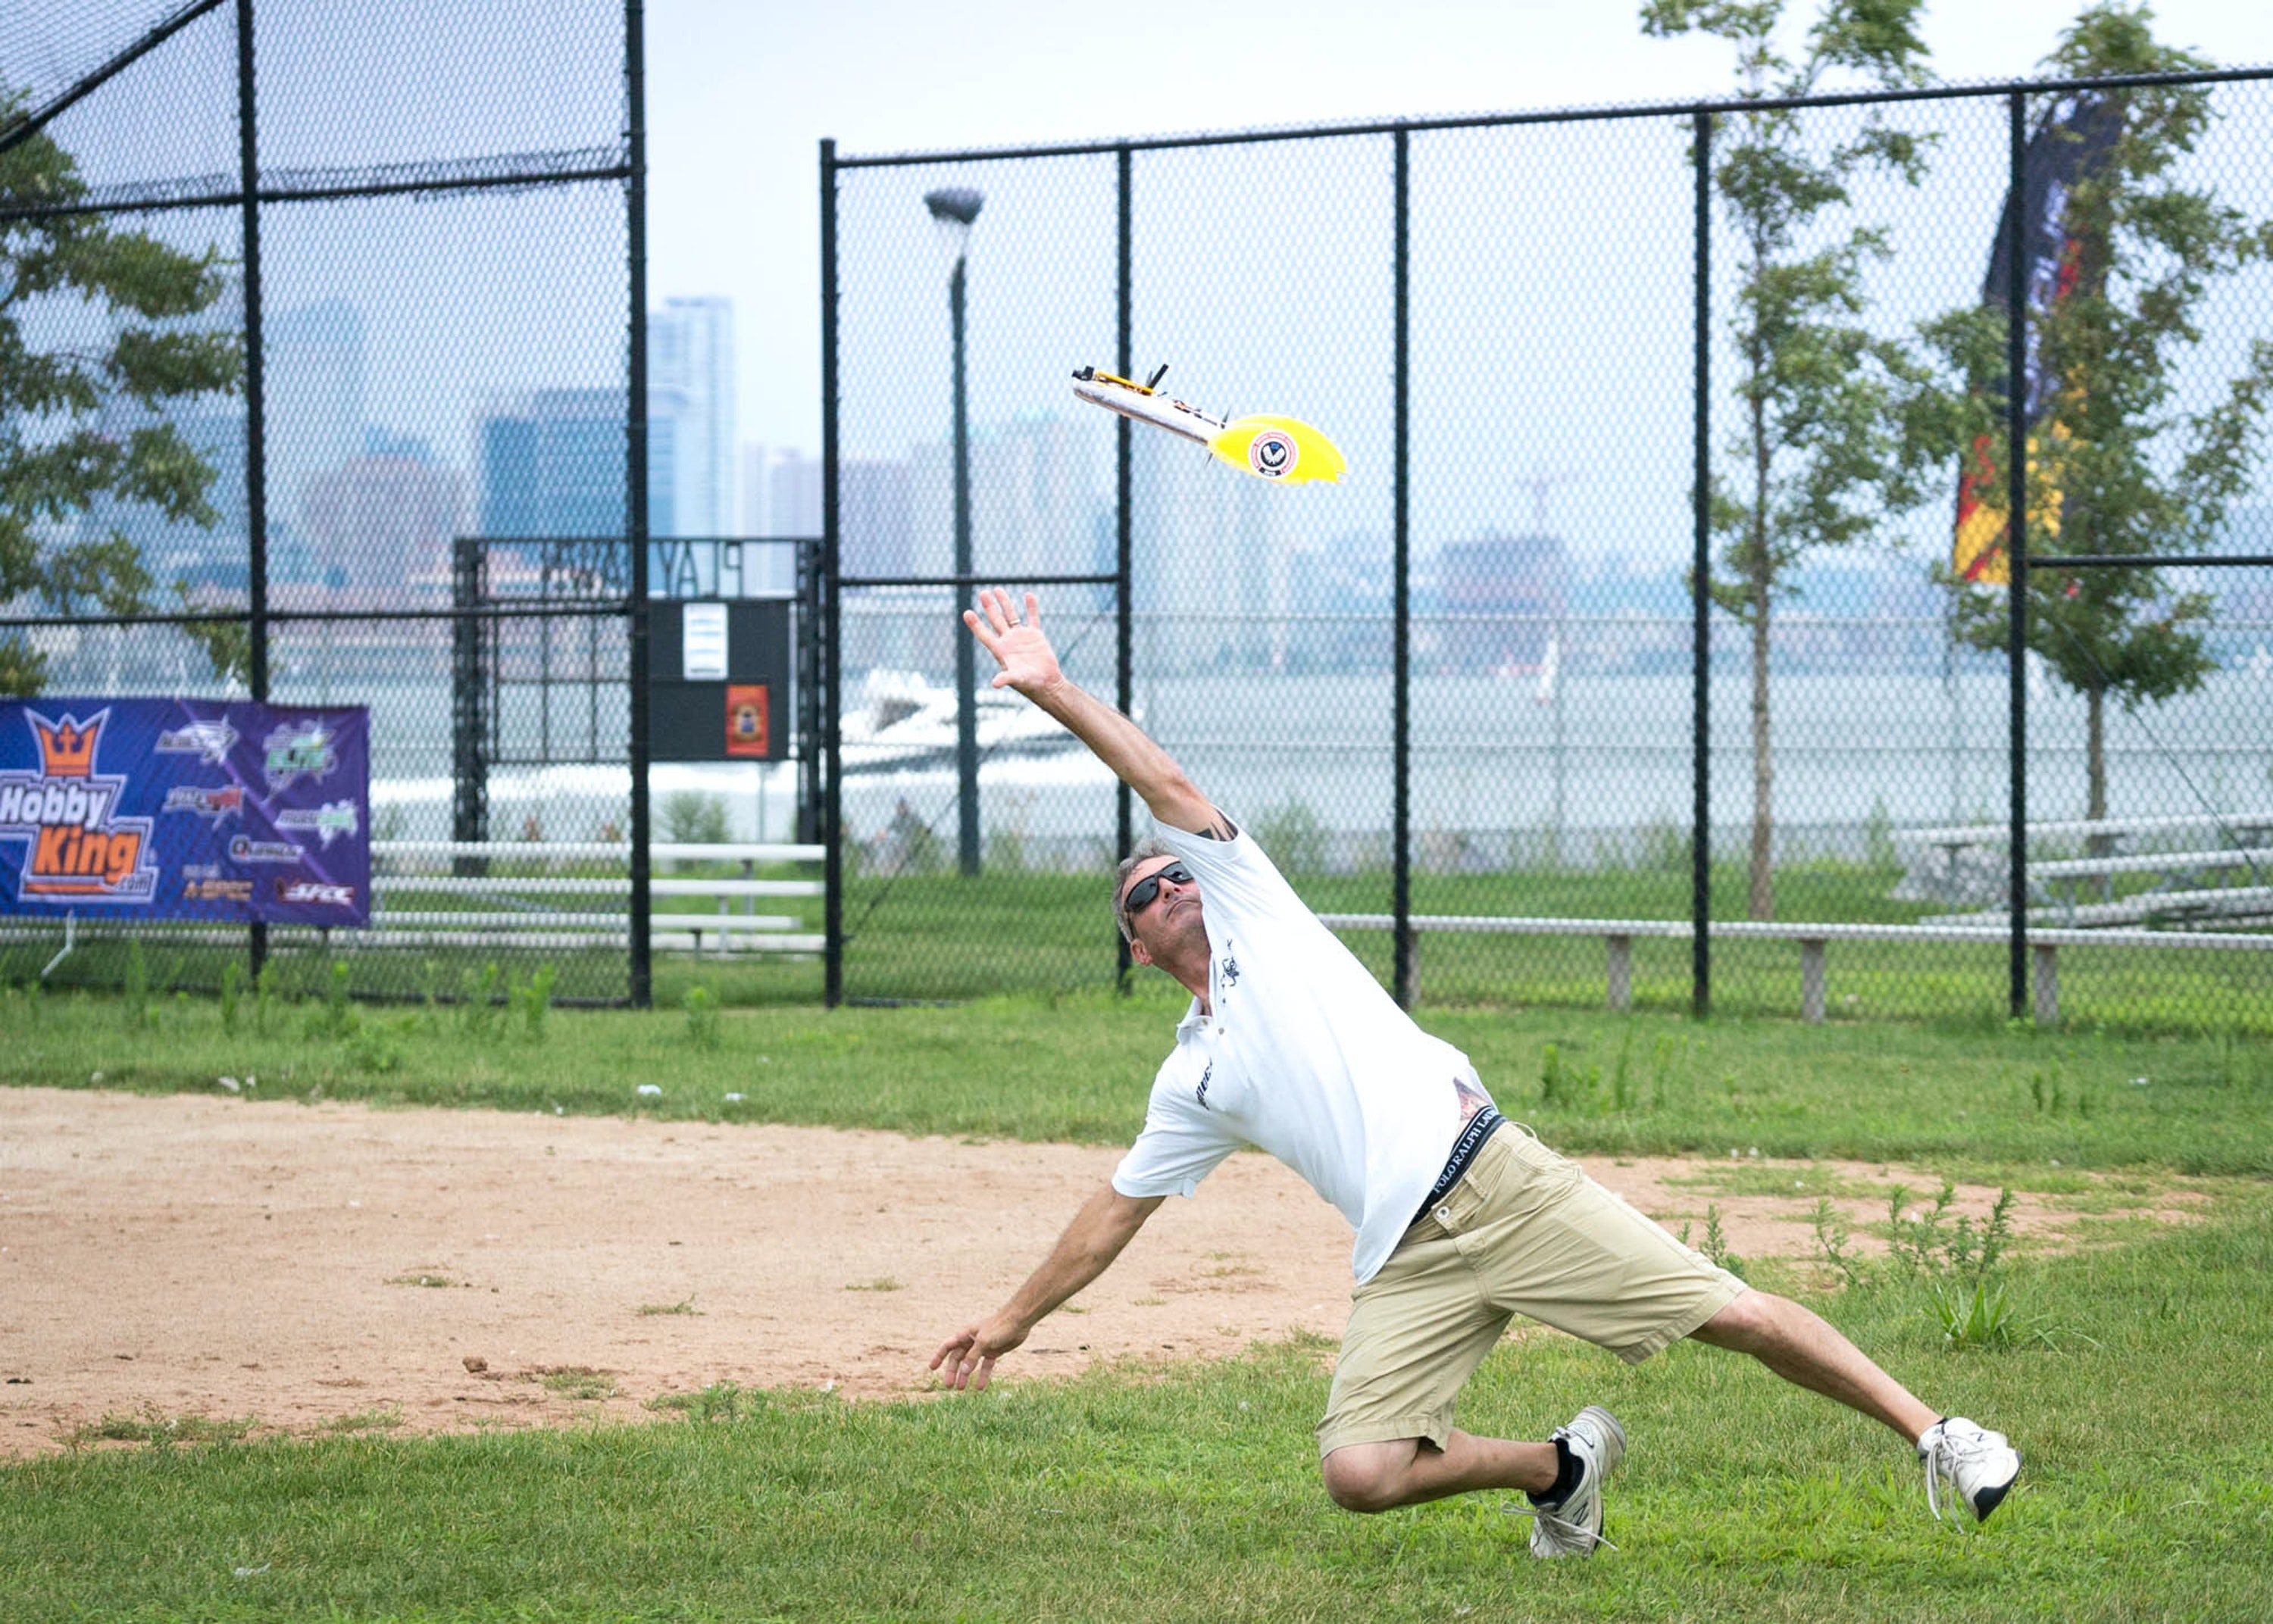 The perfect toss takes dedication.